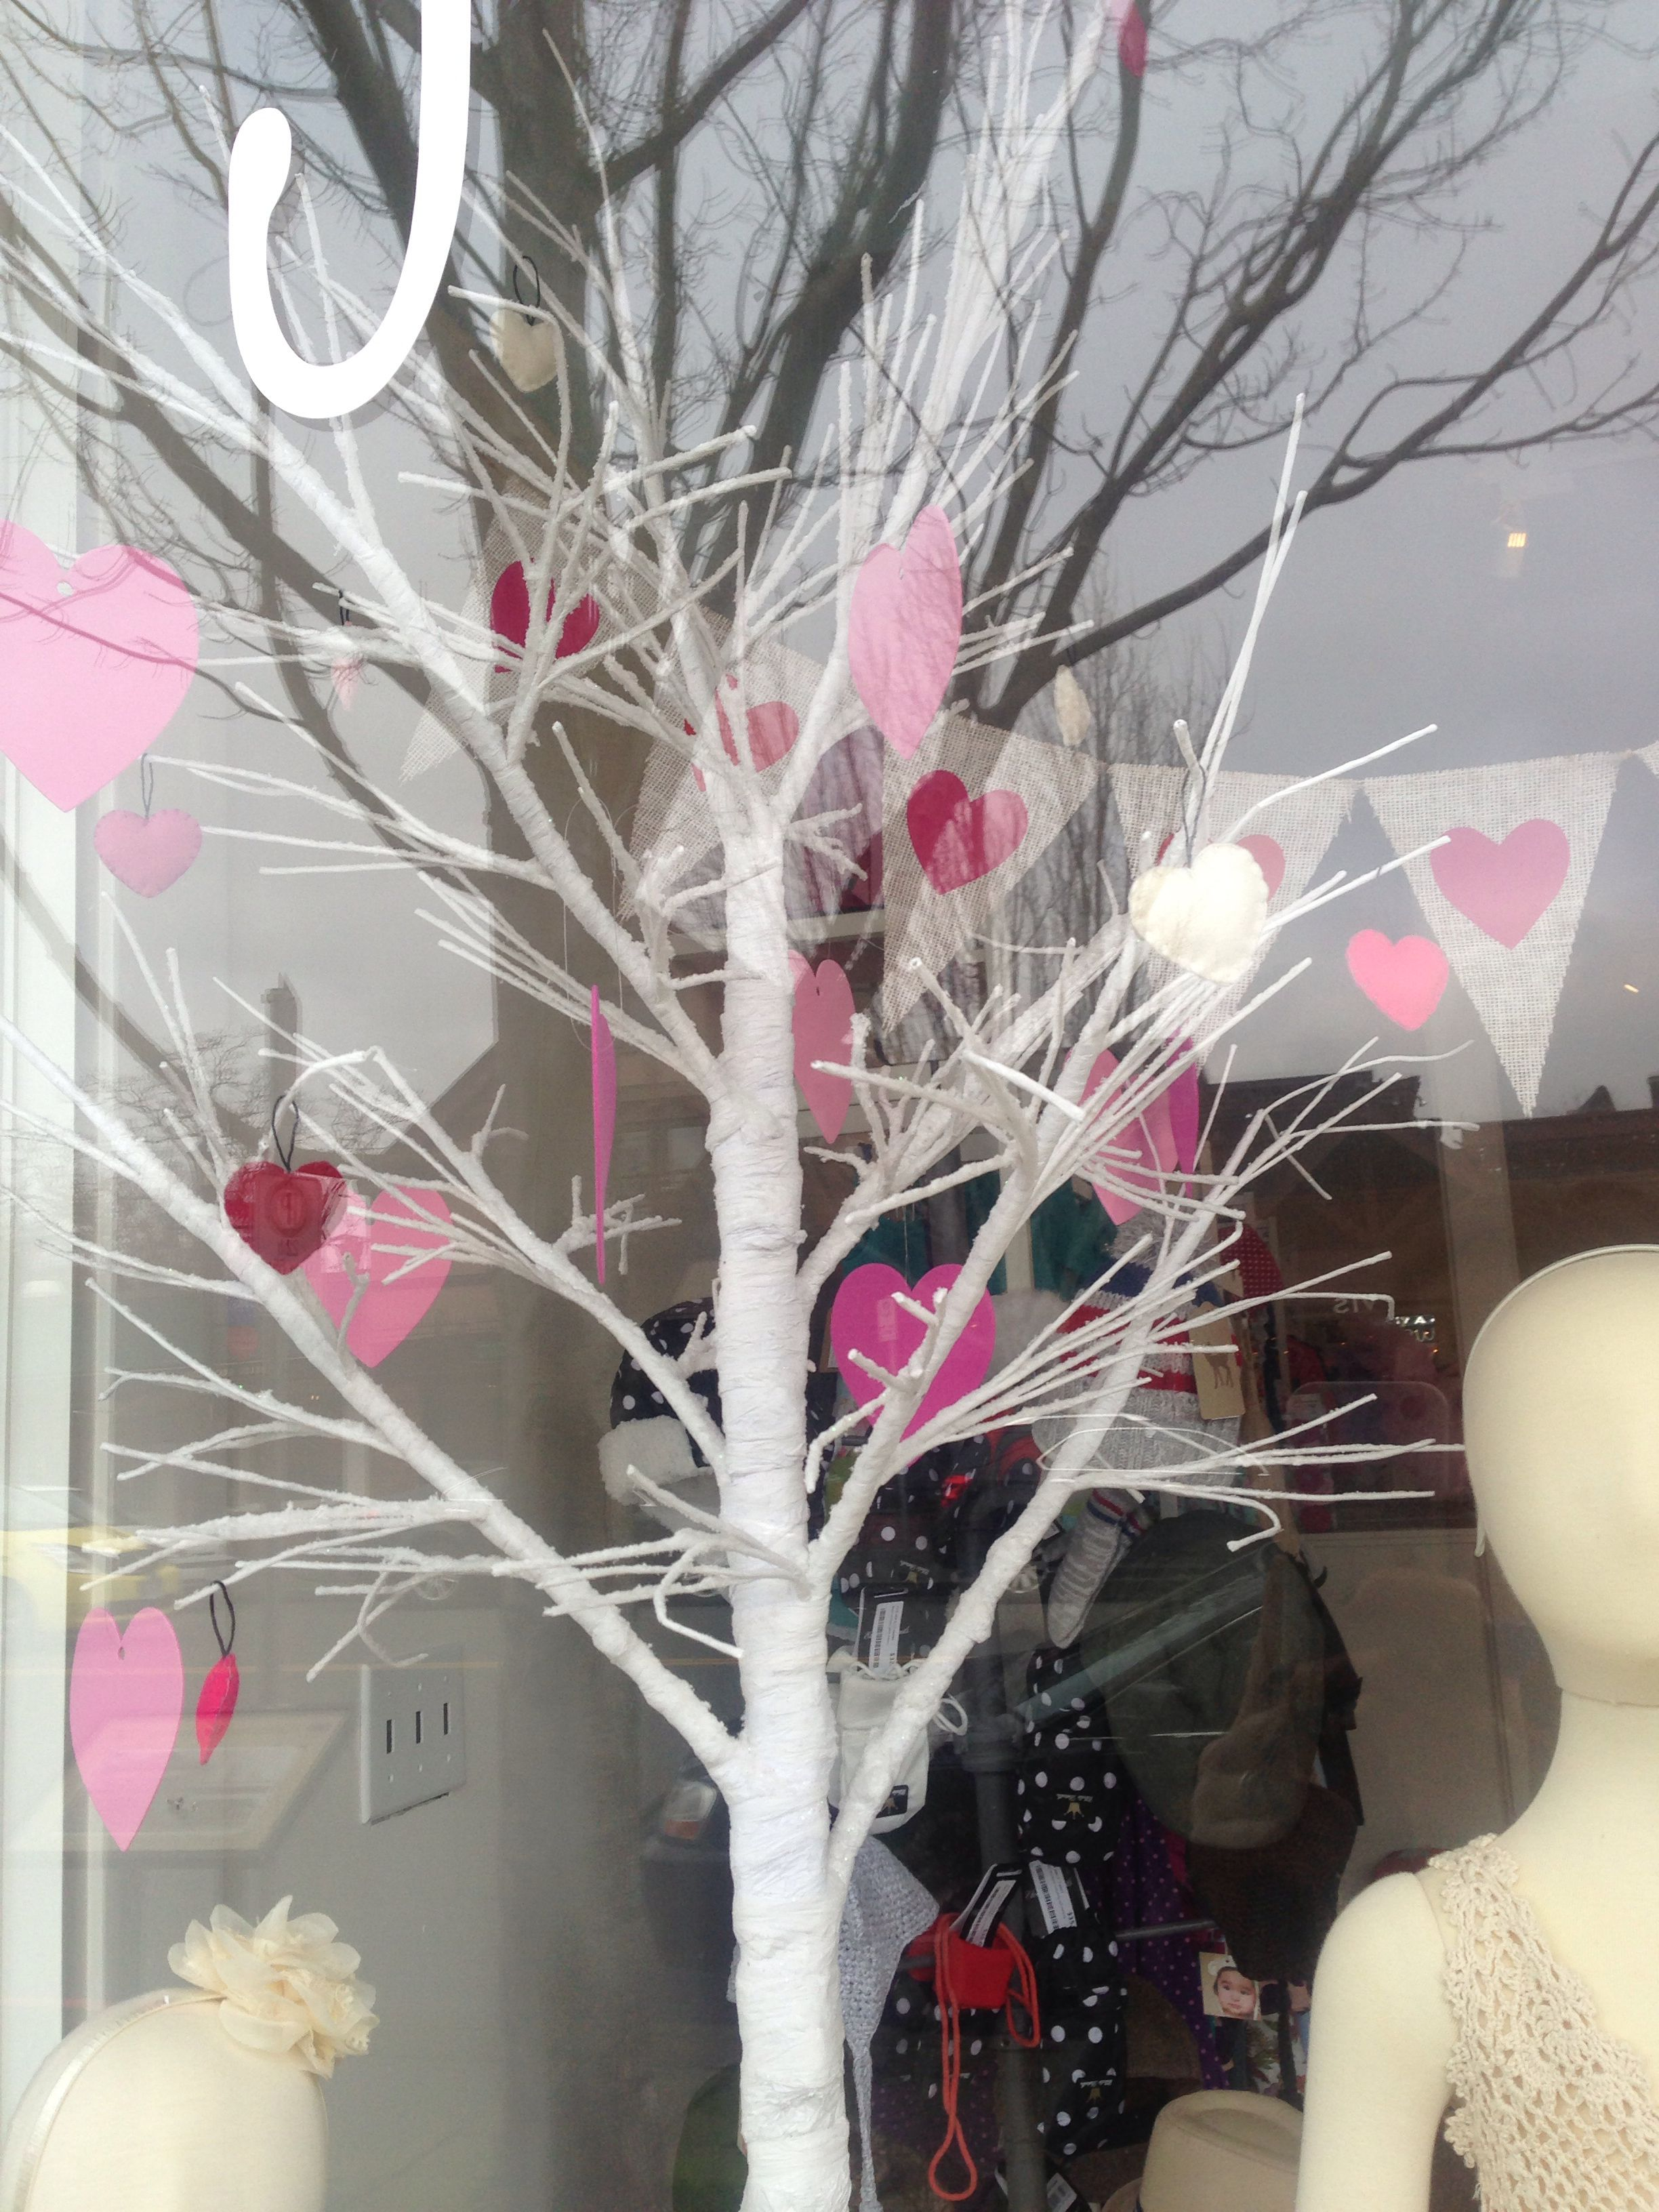 Window display ideas  valentines window display victoria  window displays  pinterest